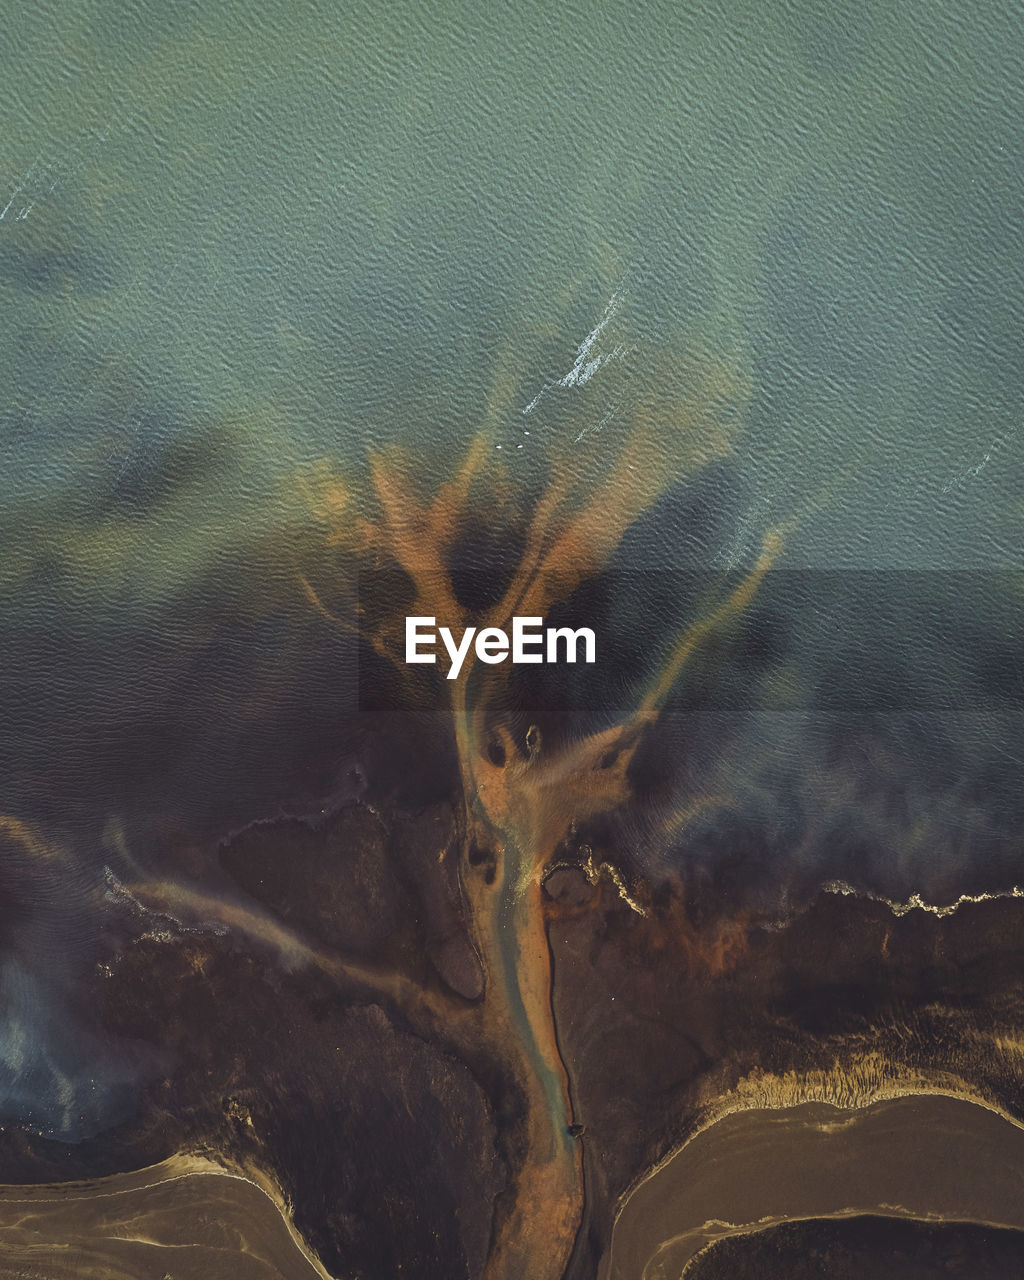 Drone shot of trees in lake